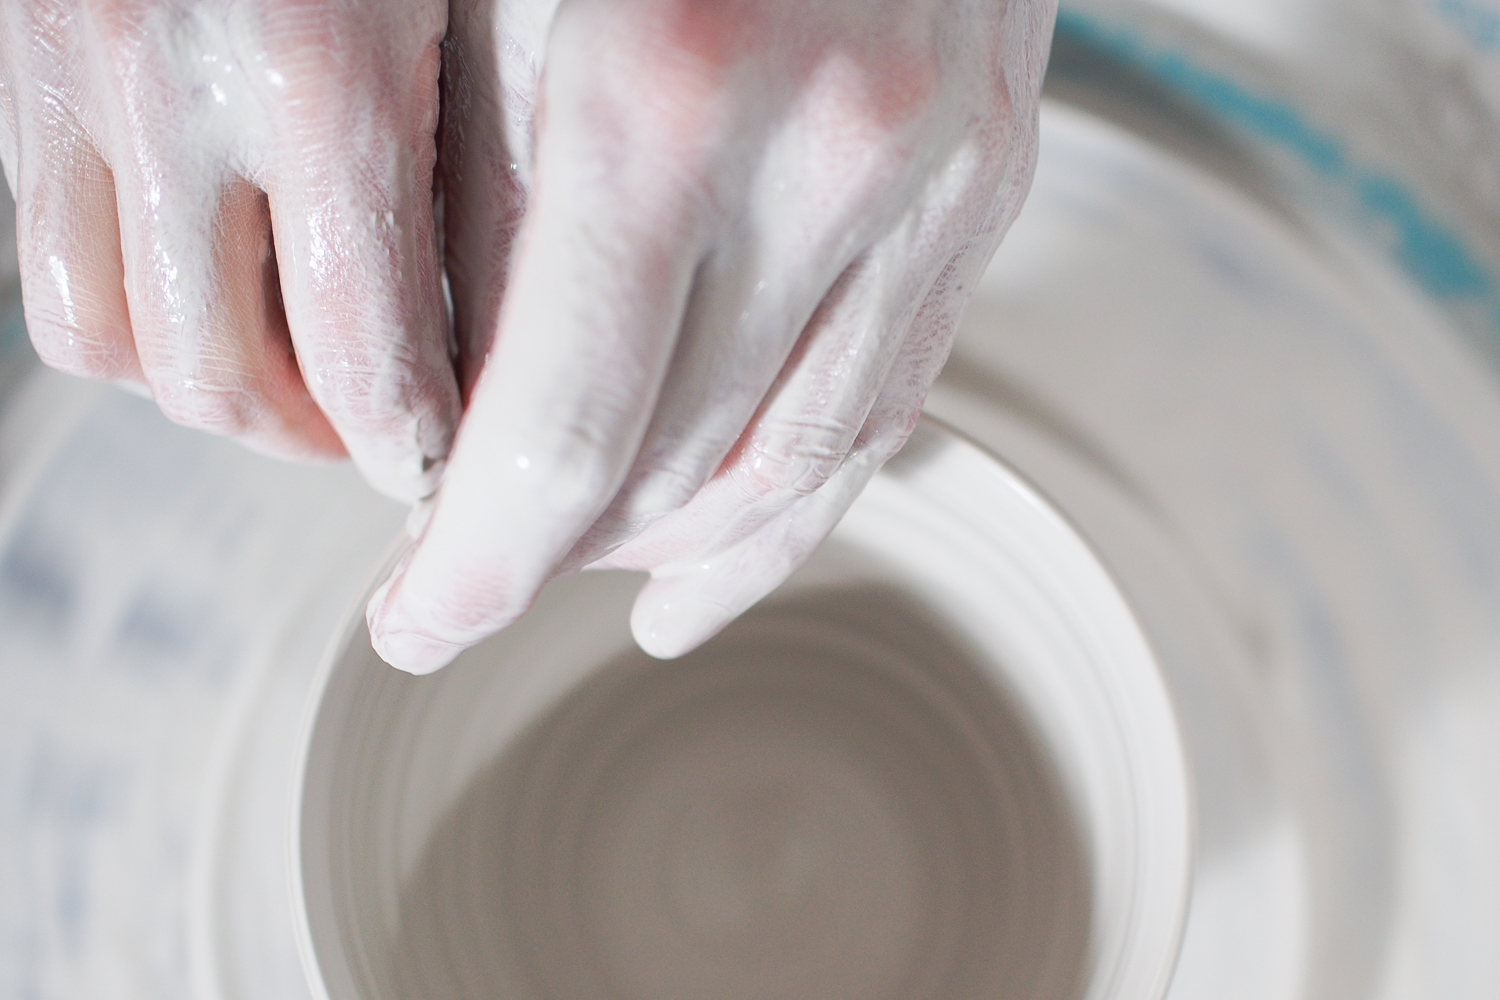 Shop handmade NZ Ceramics online at kaolin, and learn to make your own ceramics and pottery in our workshops and classes